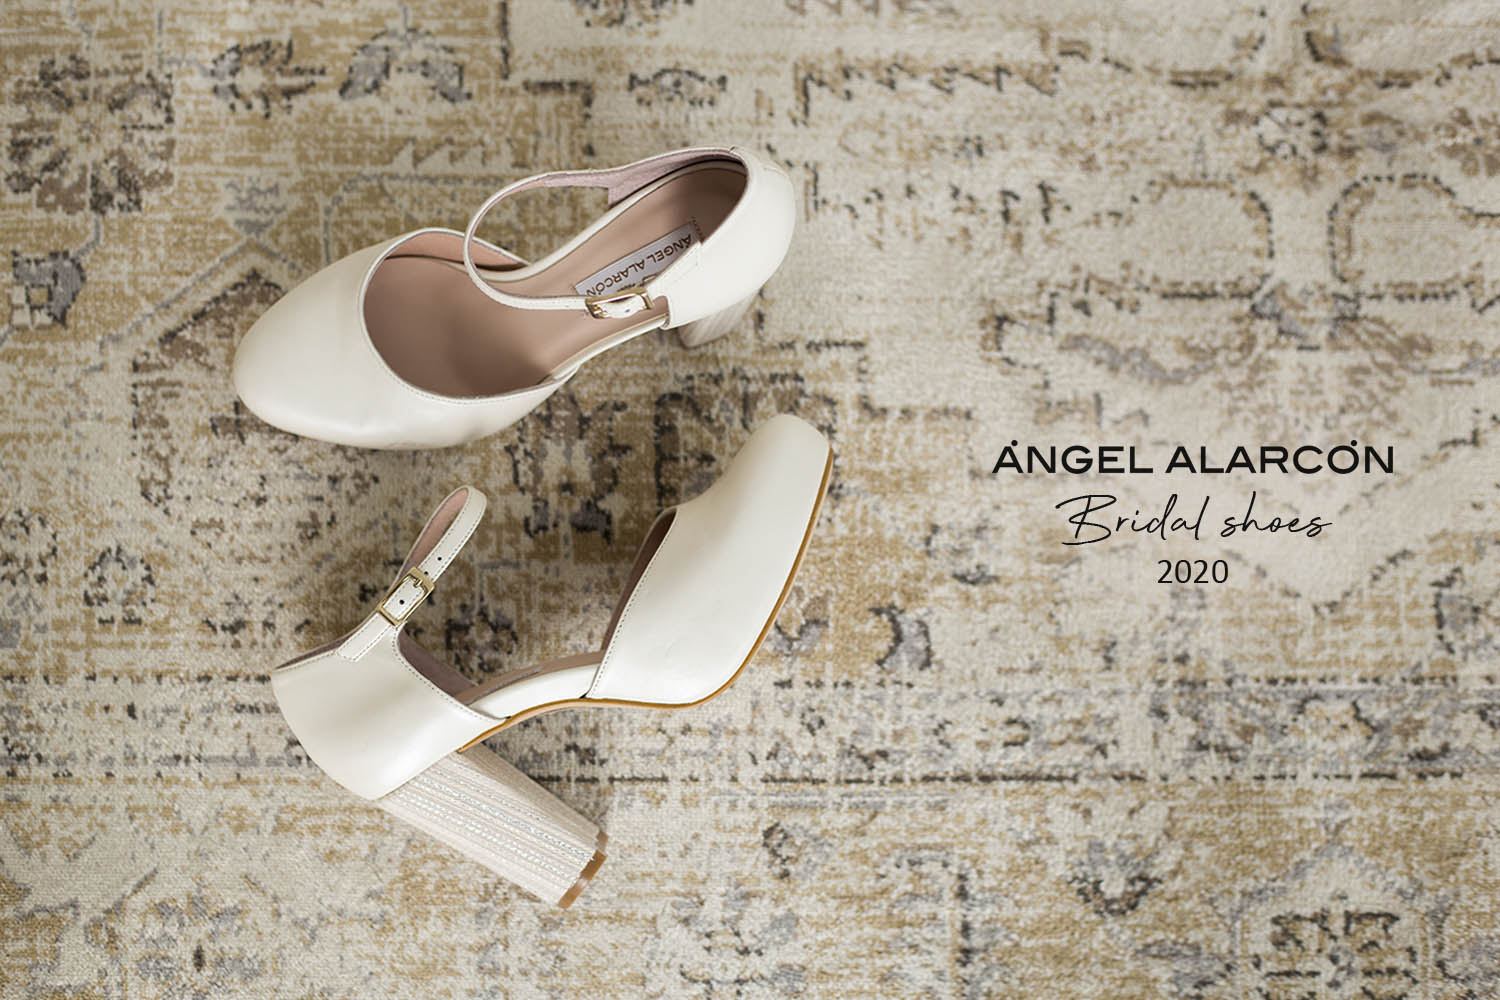 Wedding shoes 2020 comfortable brand angel alarcon 2021. Comfortable shoes made in Spain